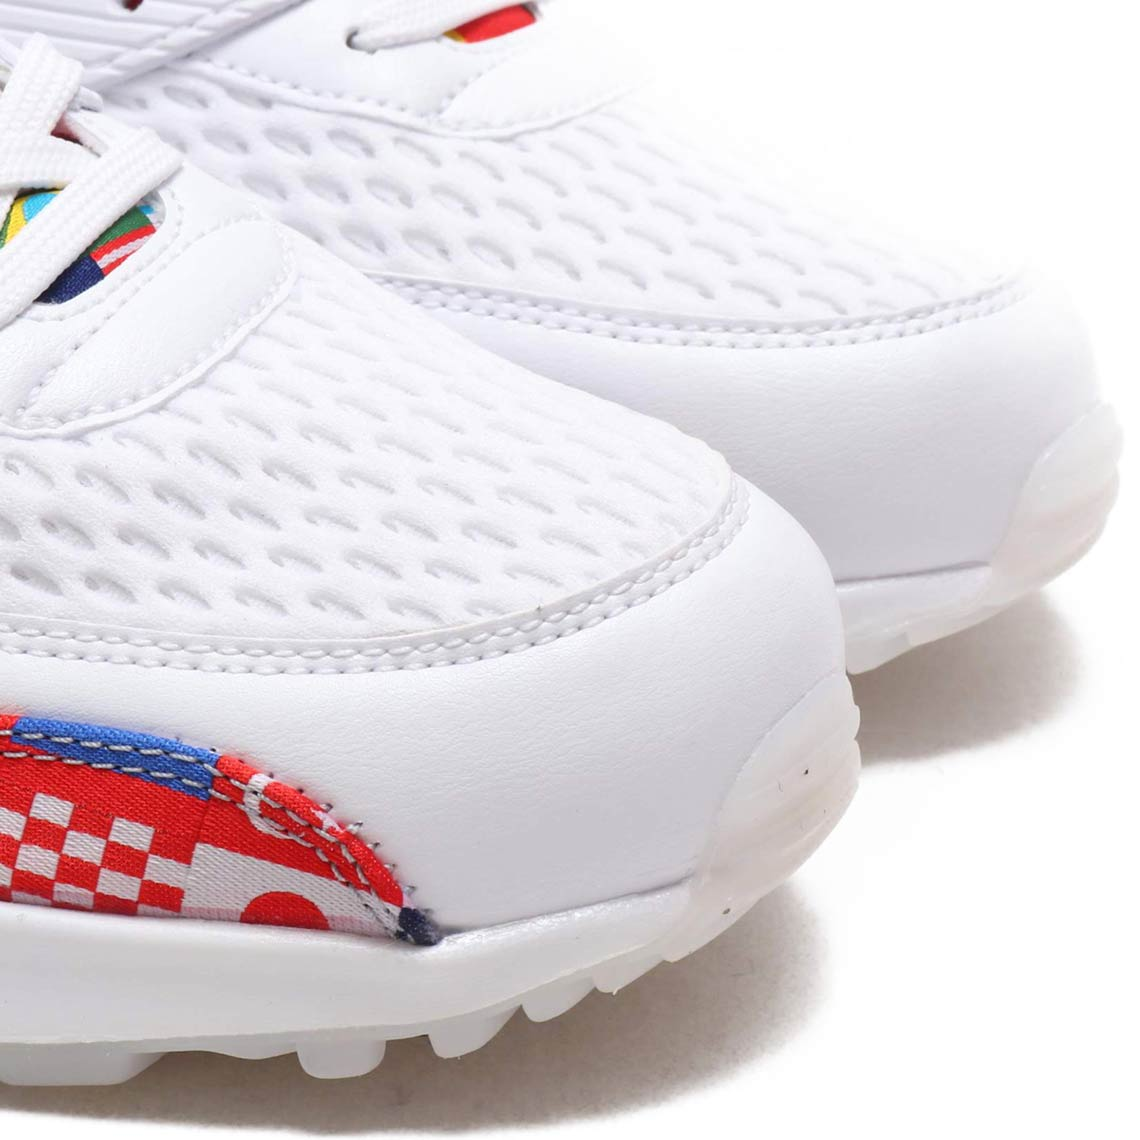 best authentic 9010b 11451 The Nike Air Max 90 EM Goes International With The NIC Pack